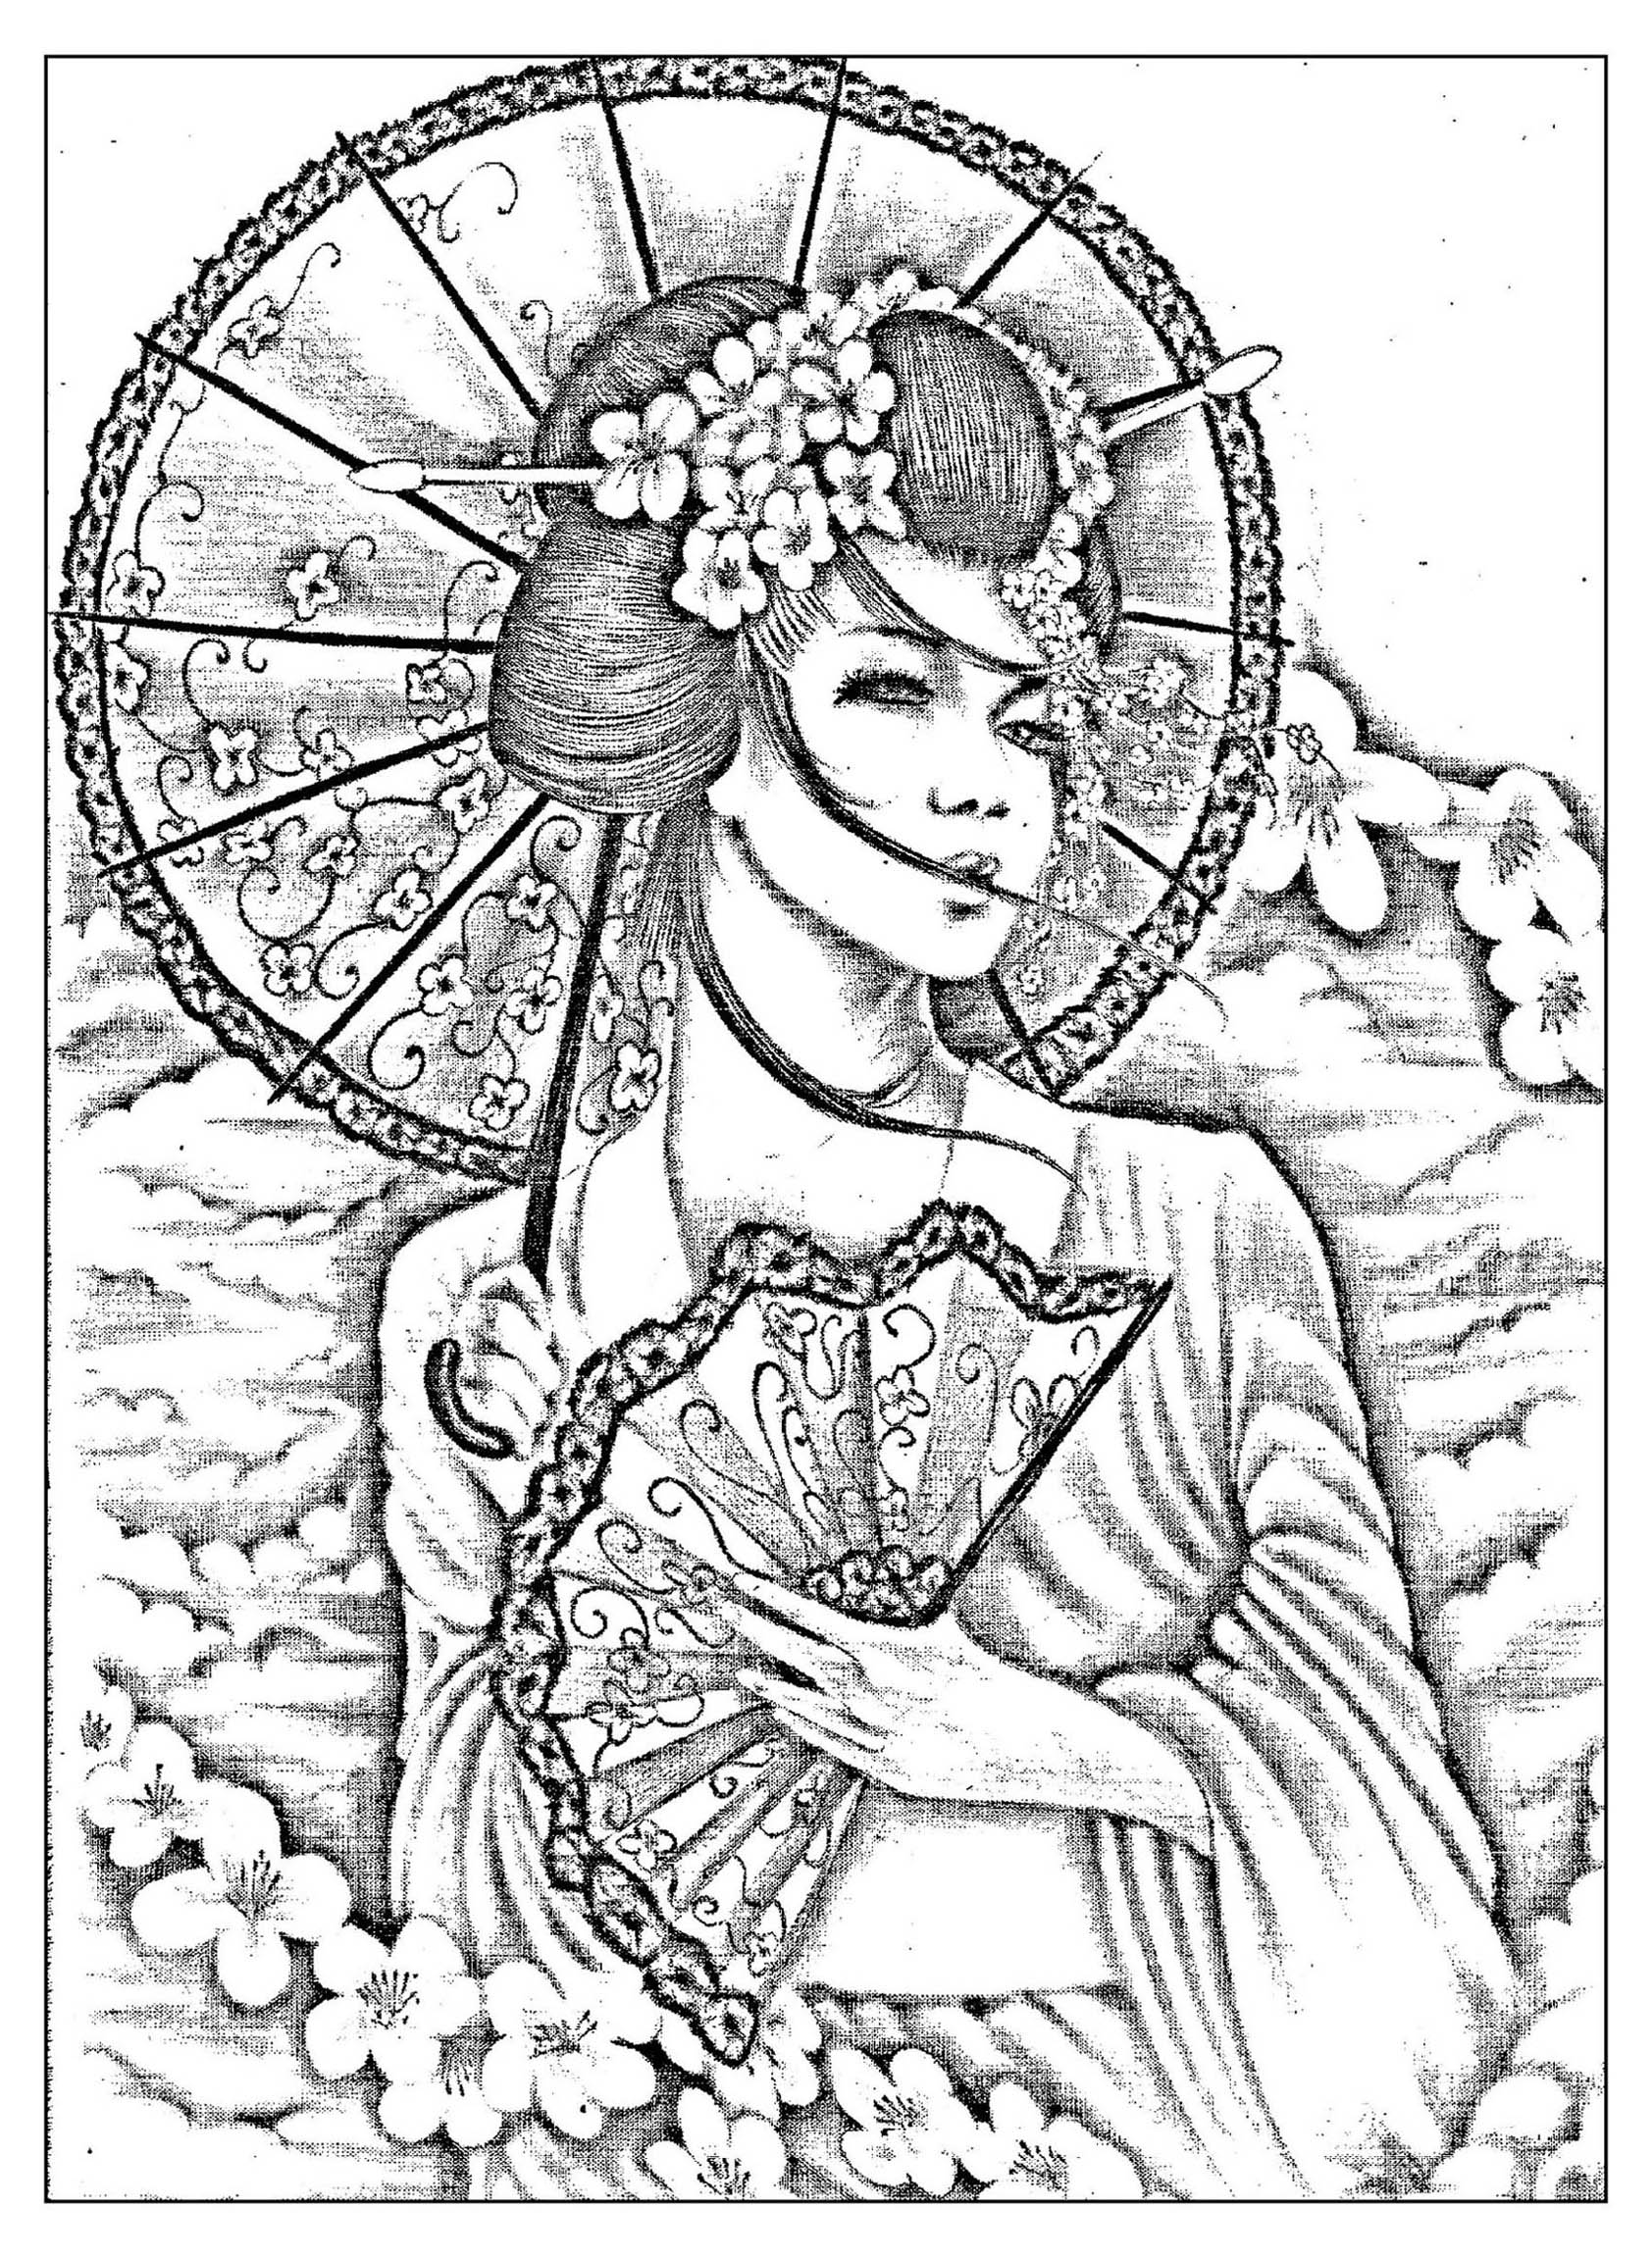 A beautiful Black & White drawing of a japanese with umbrella and évantail